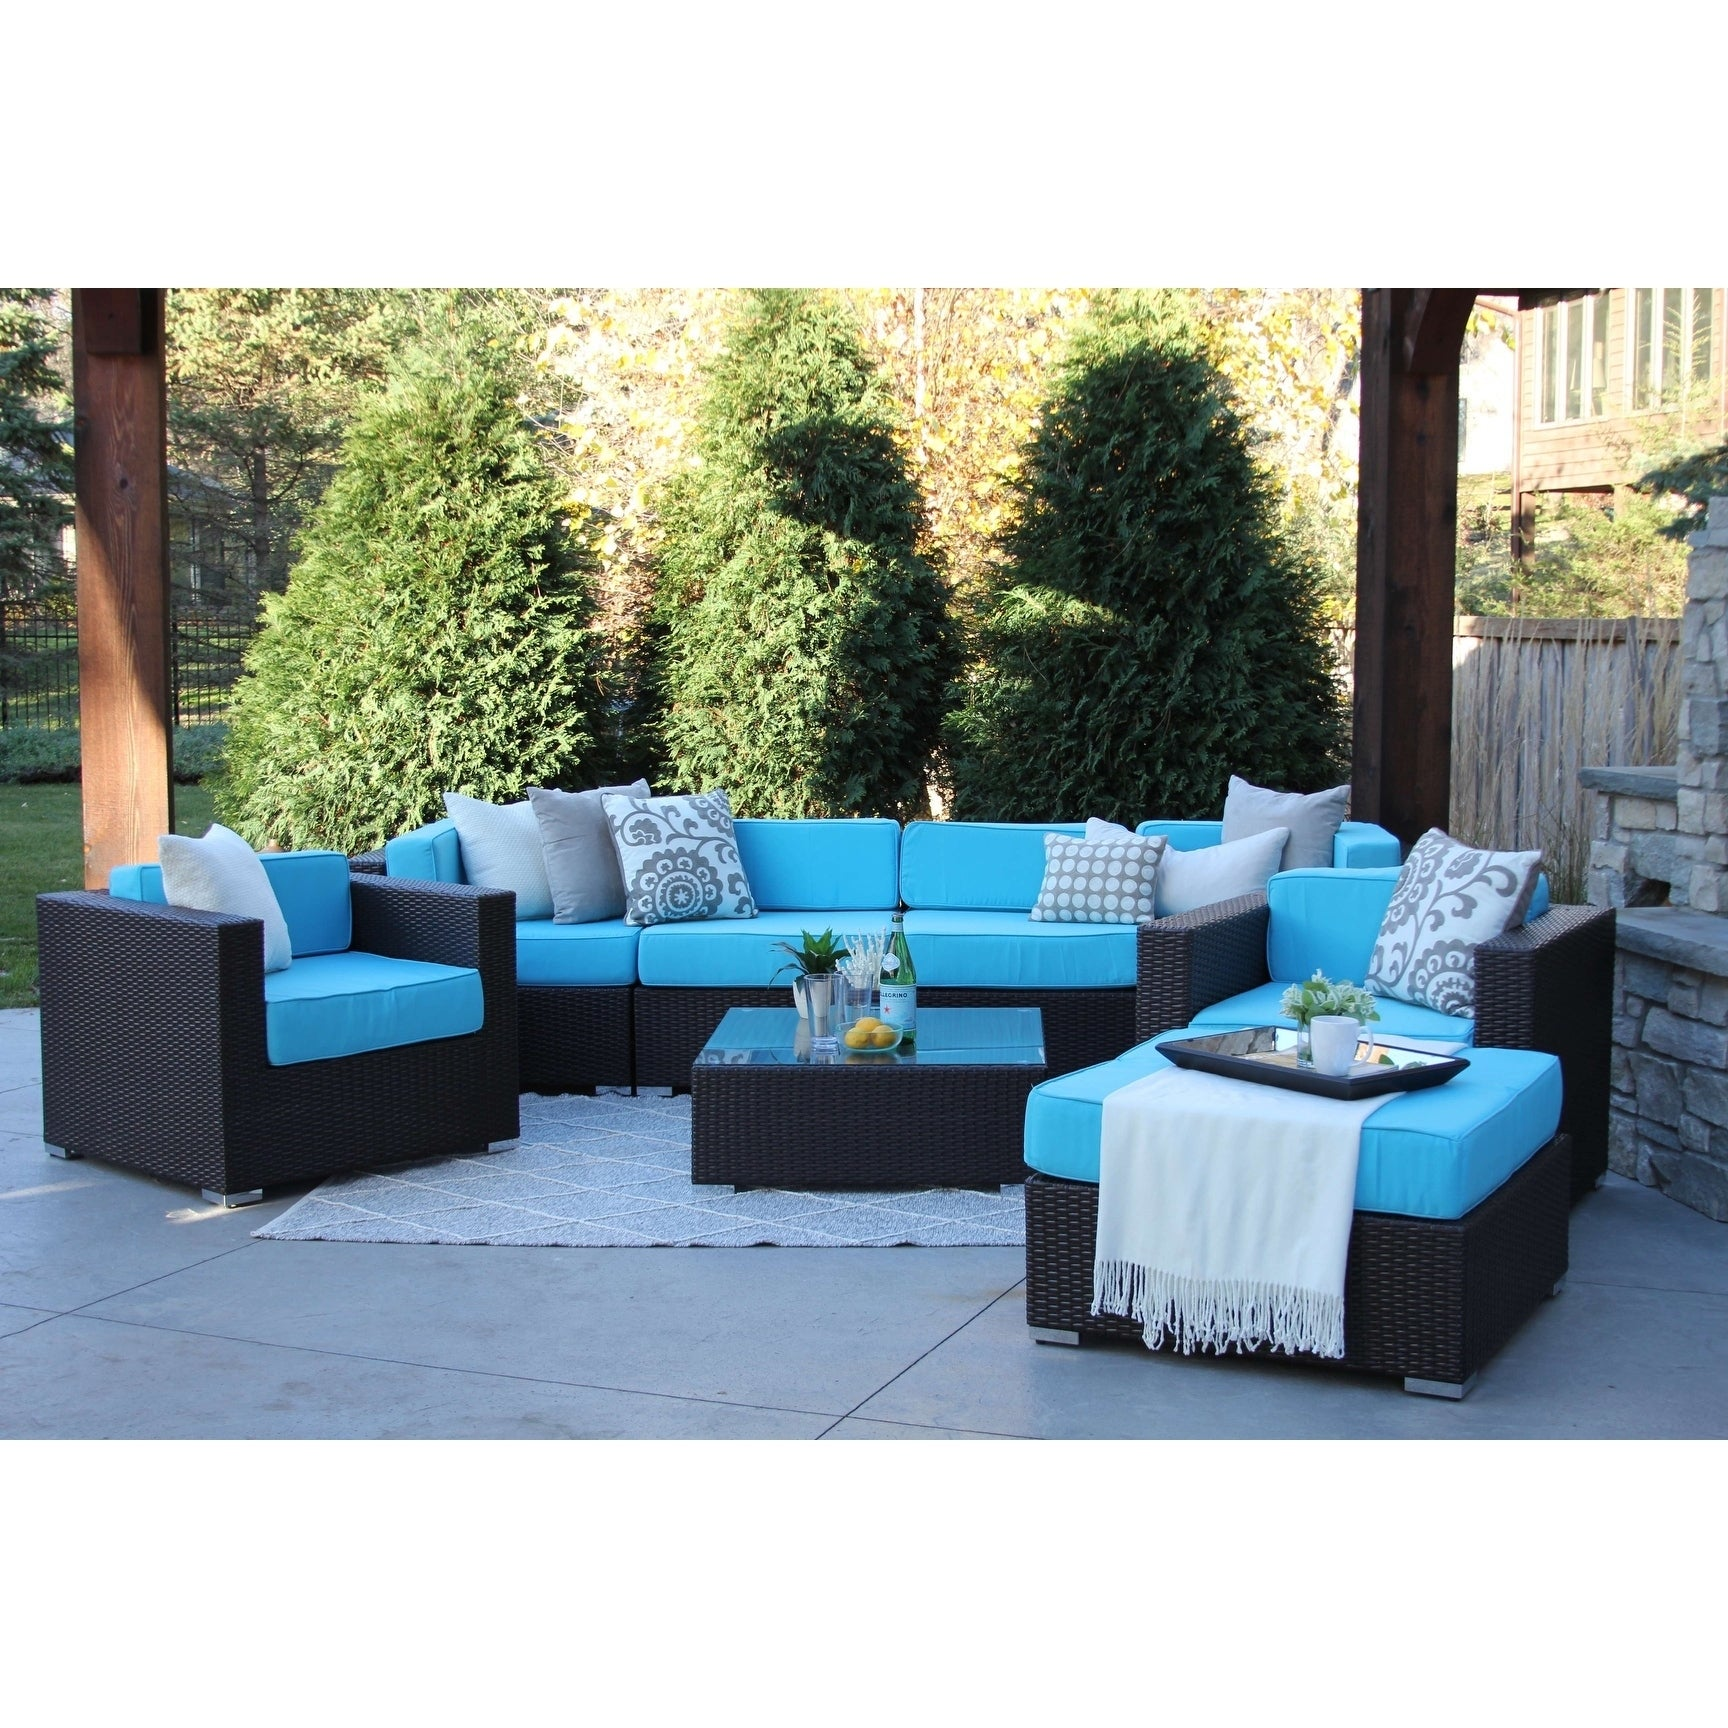 Hiawatha 8 PC Modern Outdoor Rattan Patio Furniture Sofa Set